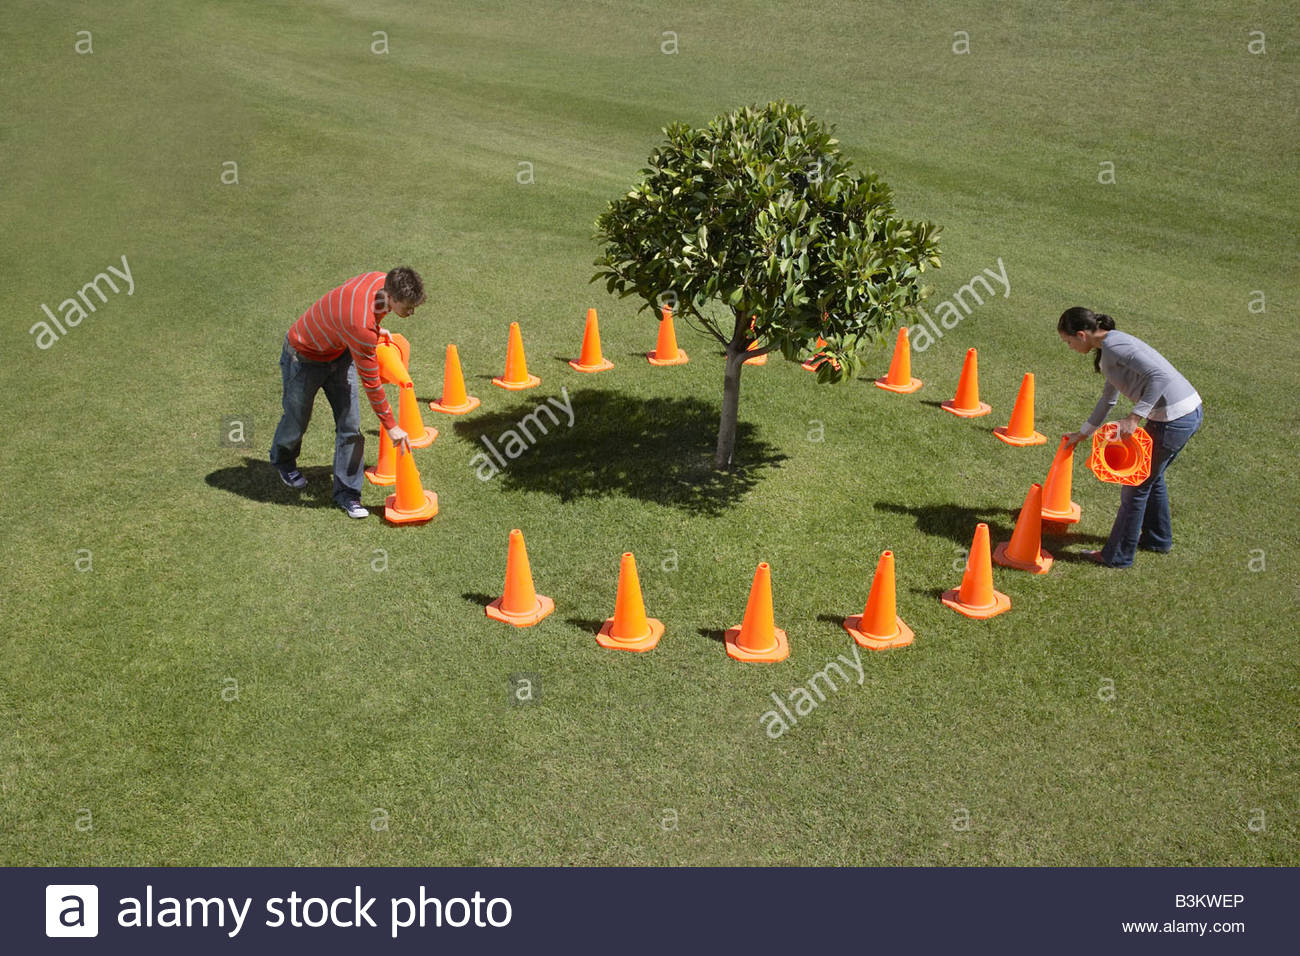 Couple placing traffic cones around tree - Stock Image